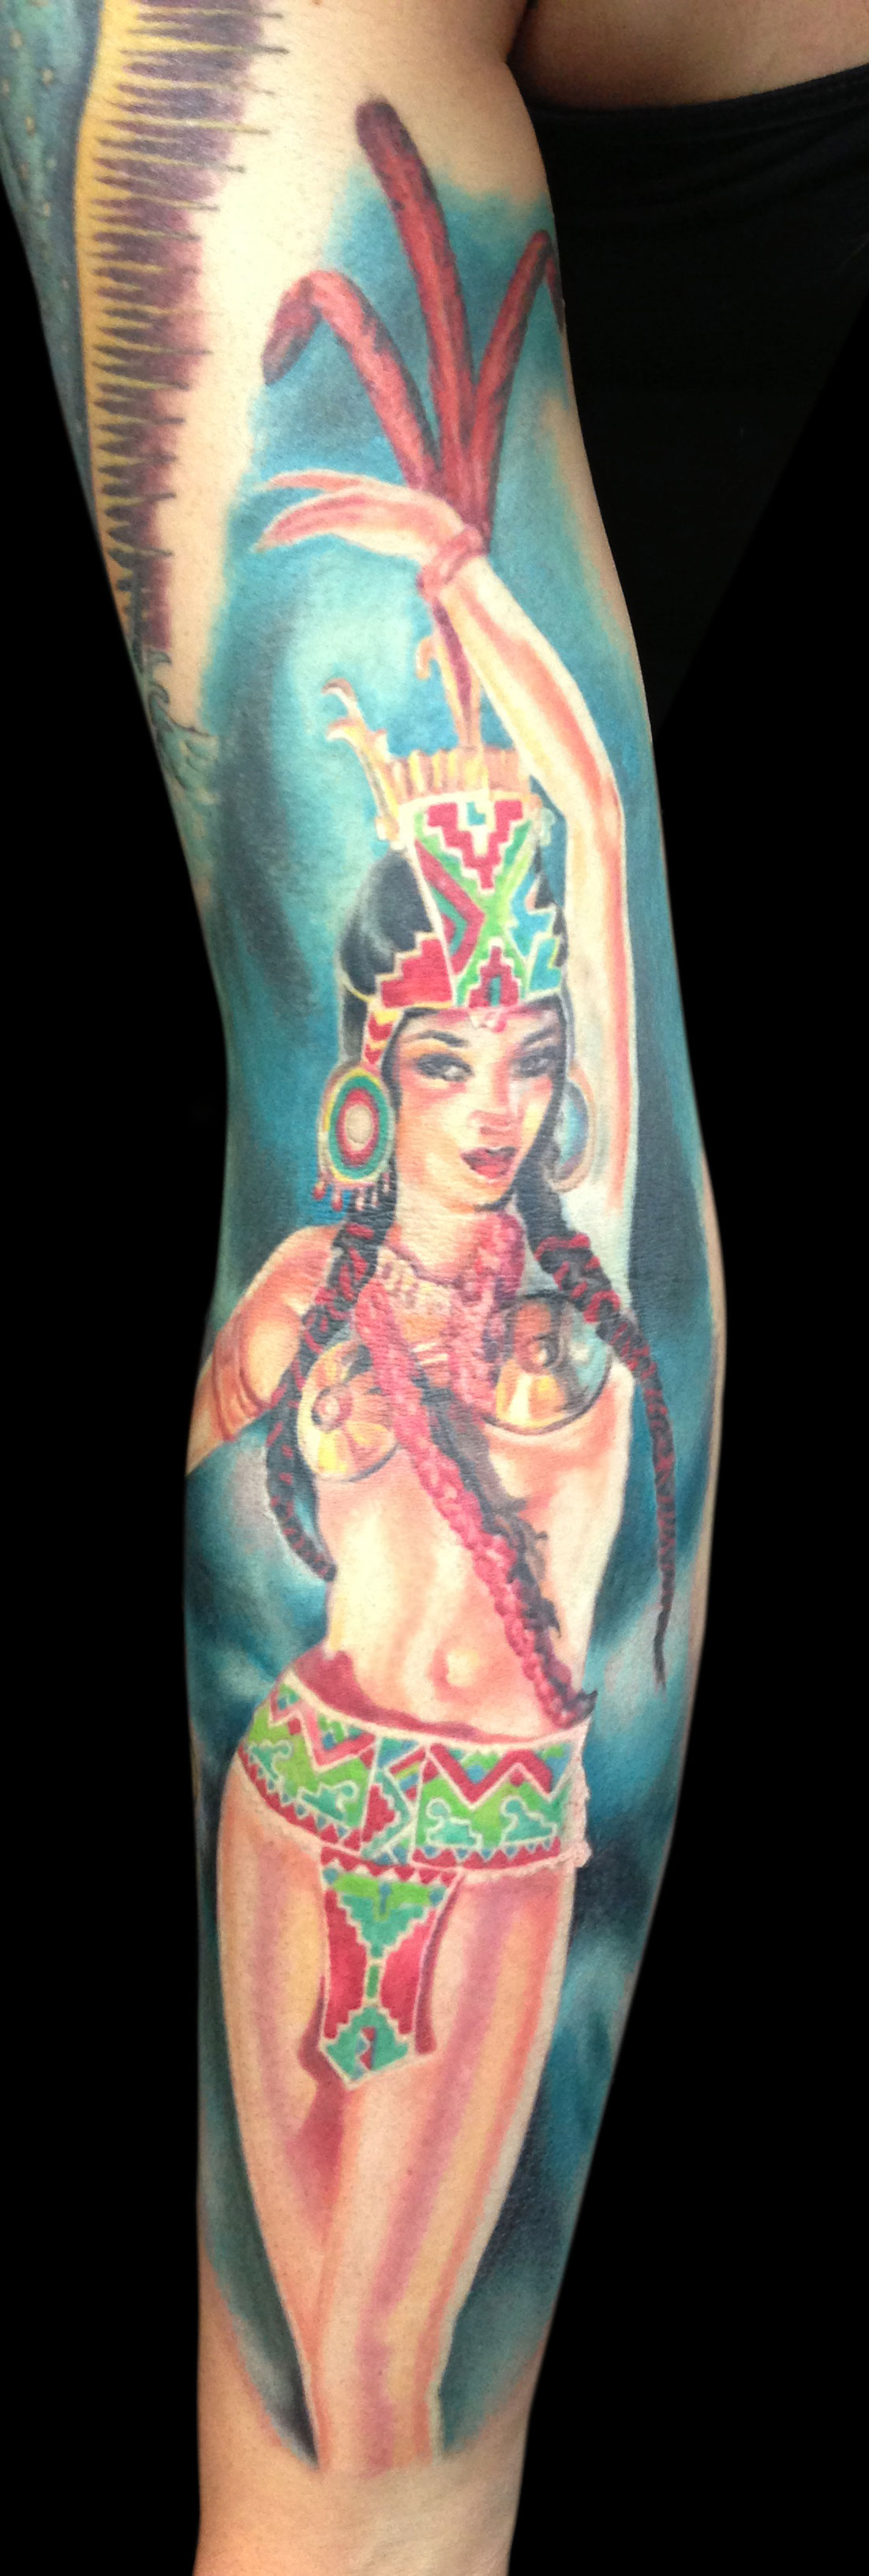 Aztec Fire Goddess Color Pin Up Tattoo, (entire tattoo and figure is 3 years healed in this photo, except for a small portion of the turquoise background on the bottom is fresh)